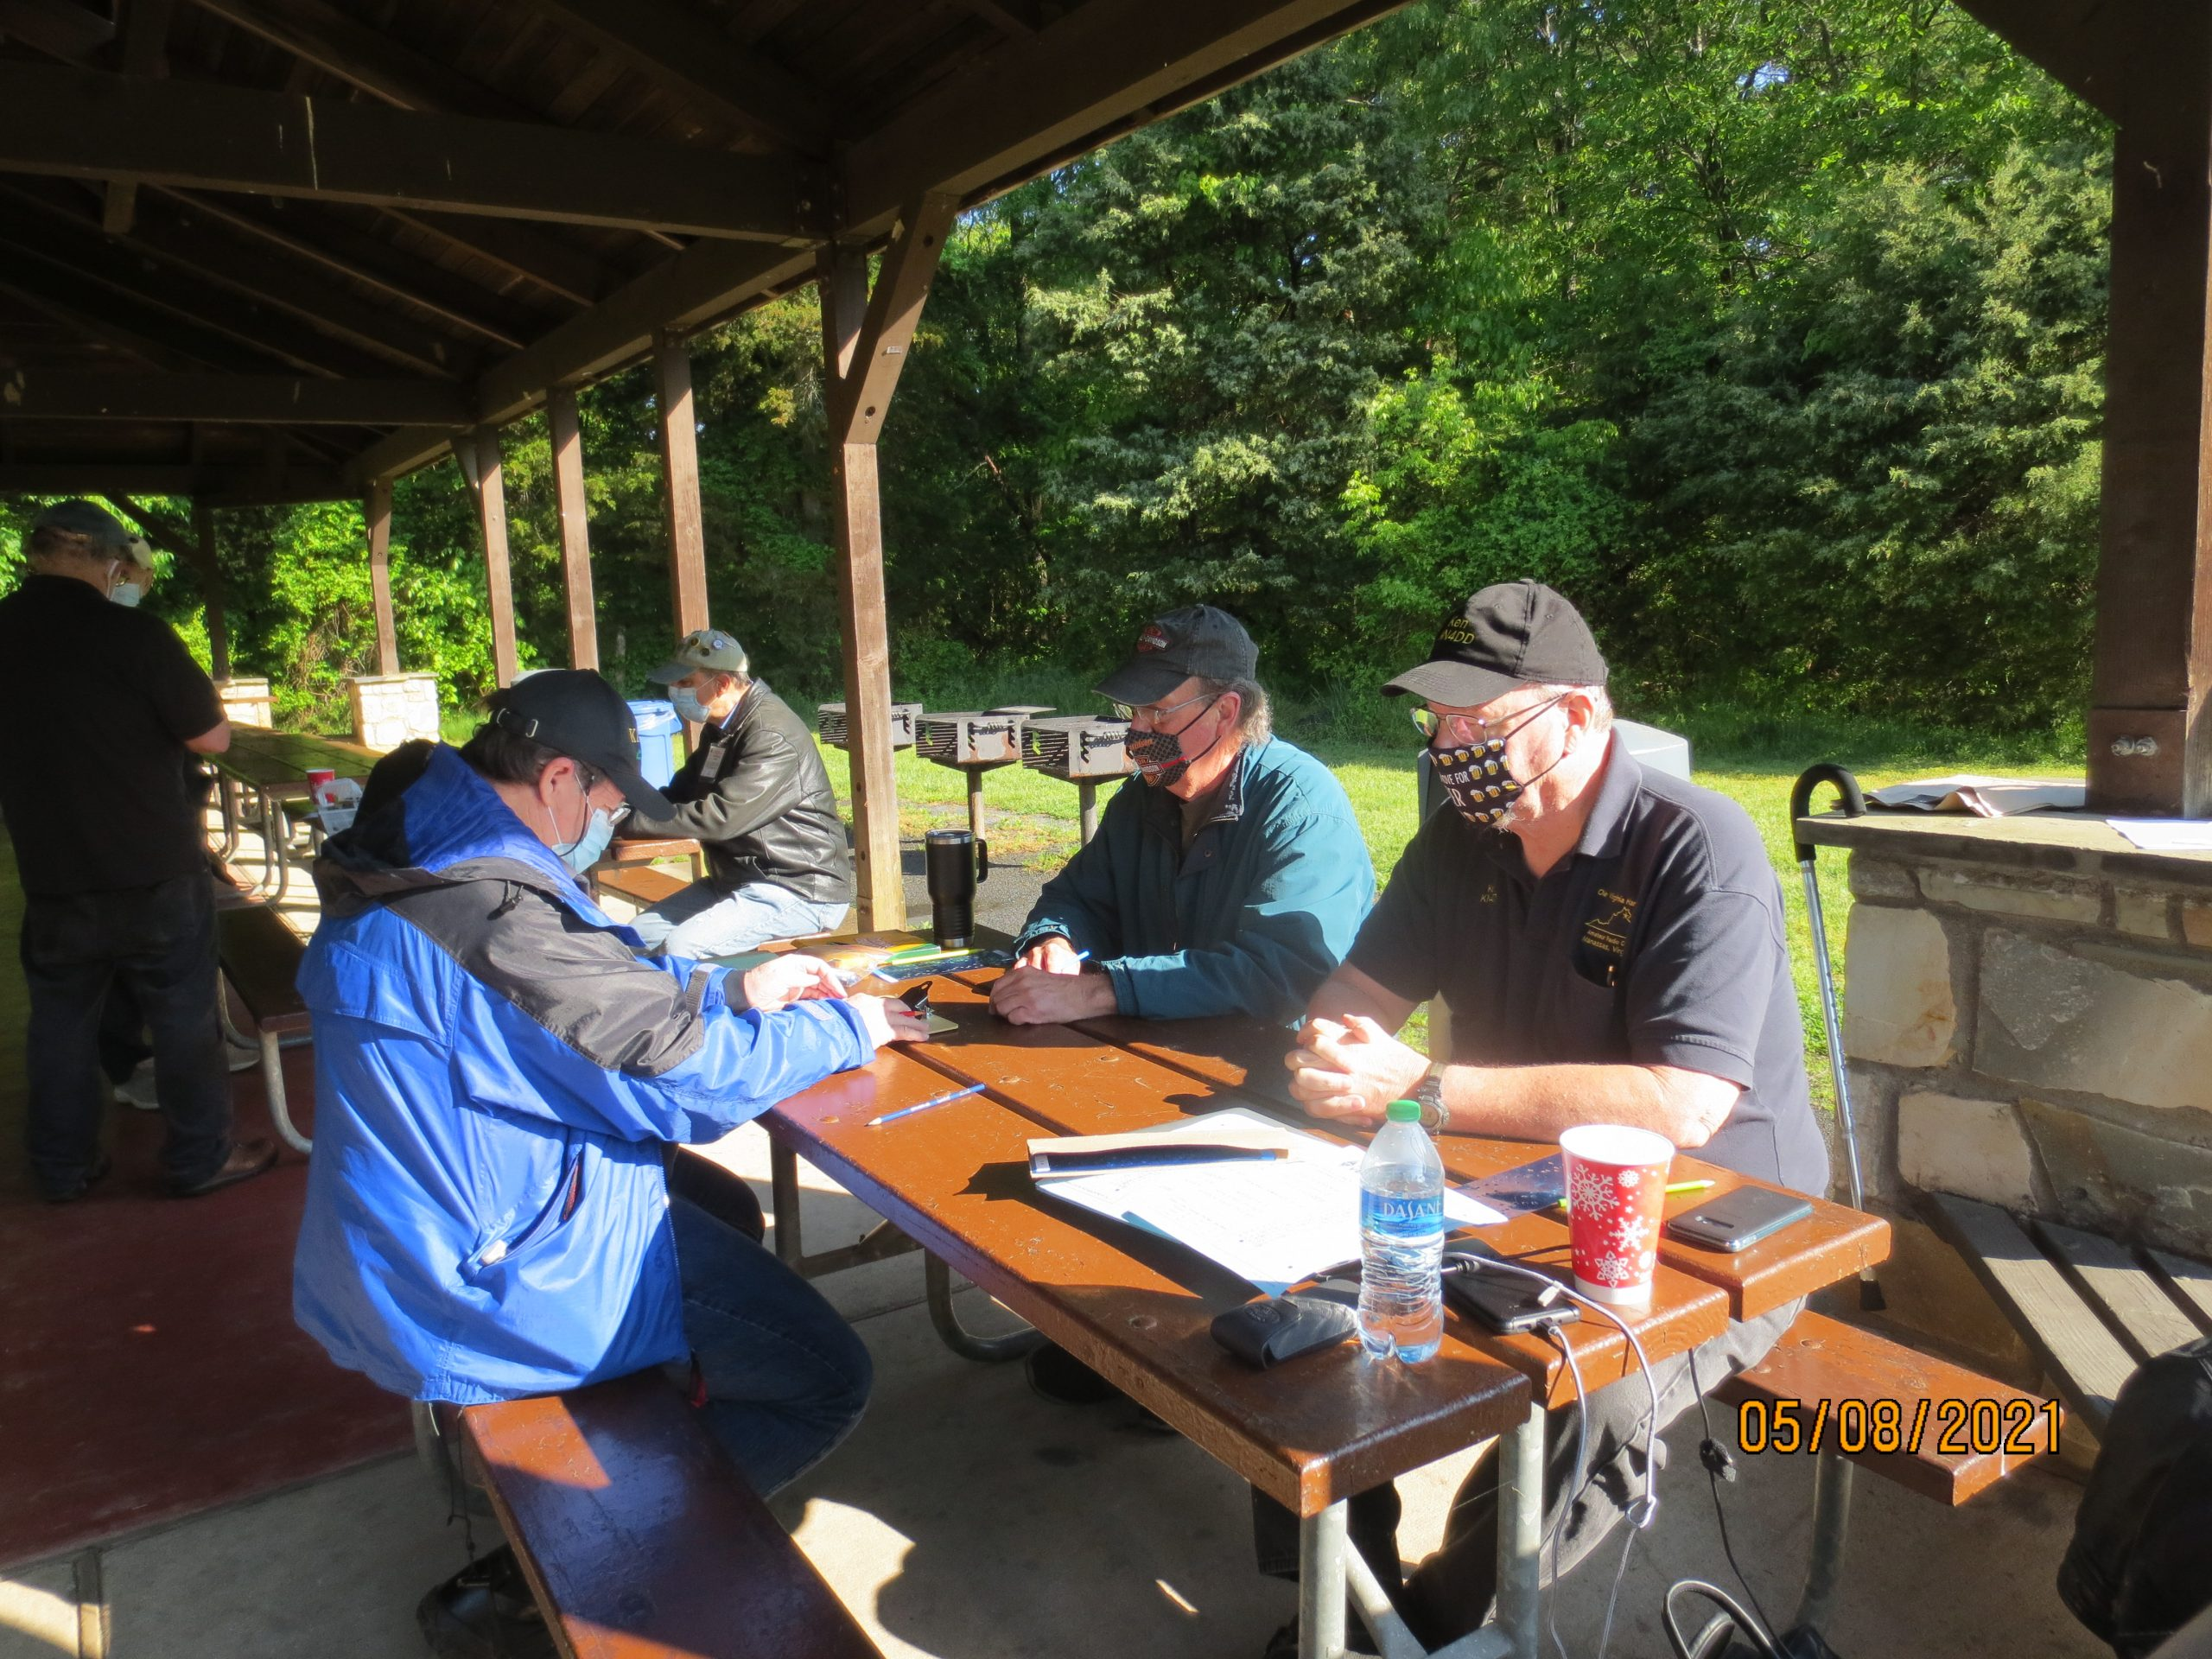 Ray, KM4EKR; George, K4GVT and Ken, KN4DD at test grading table